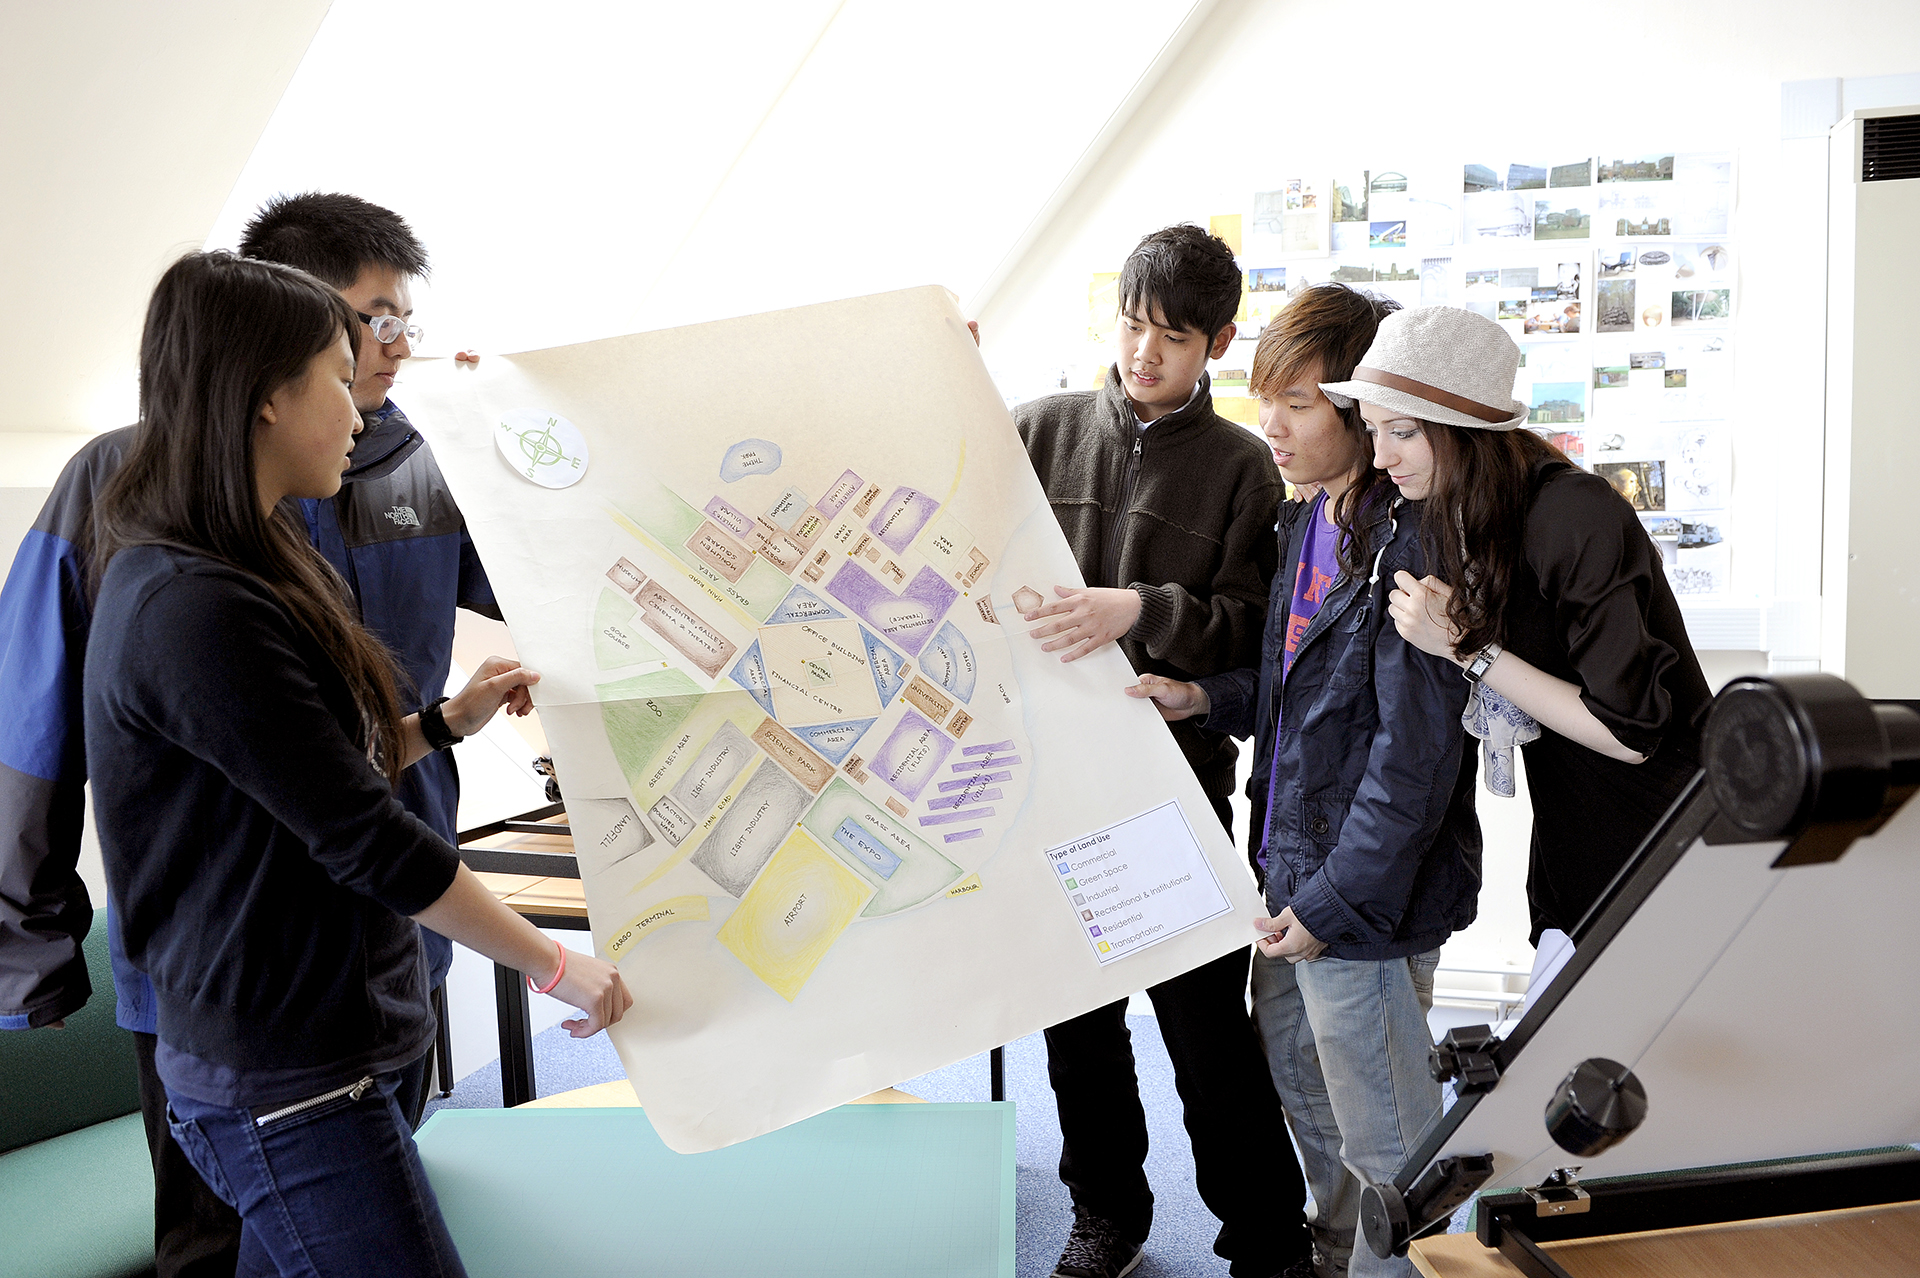 Students in architecture class presenting project